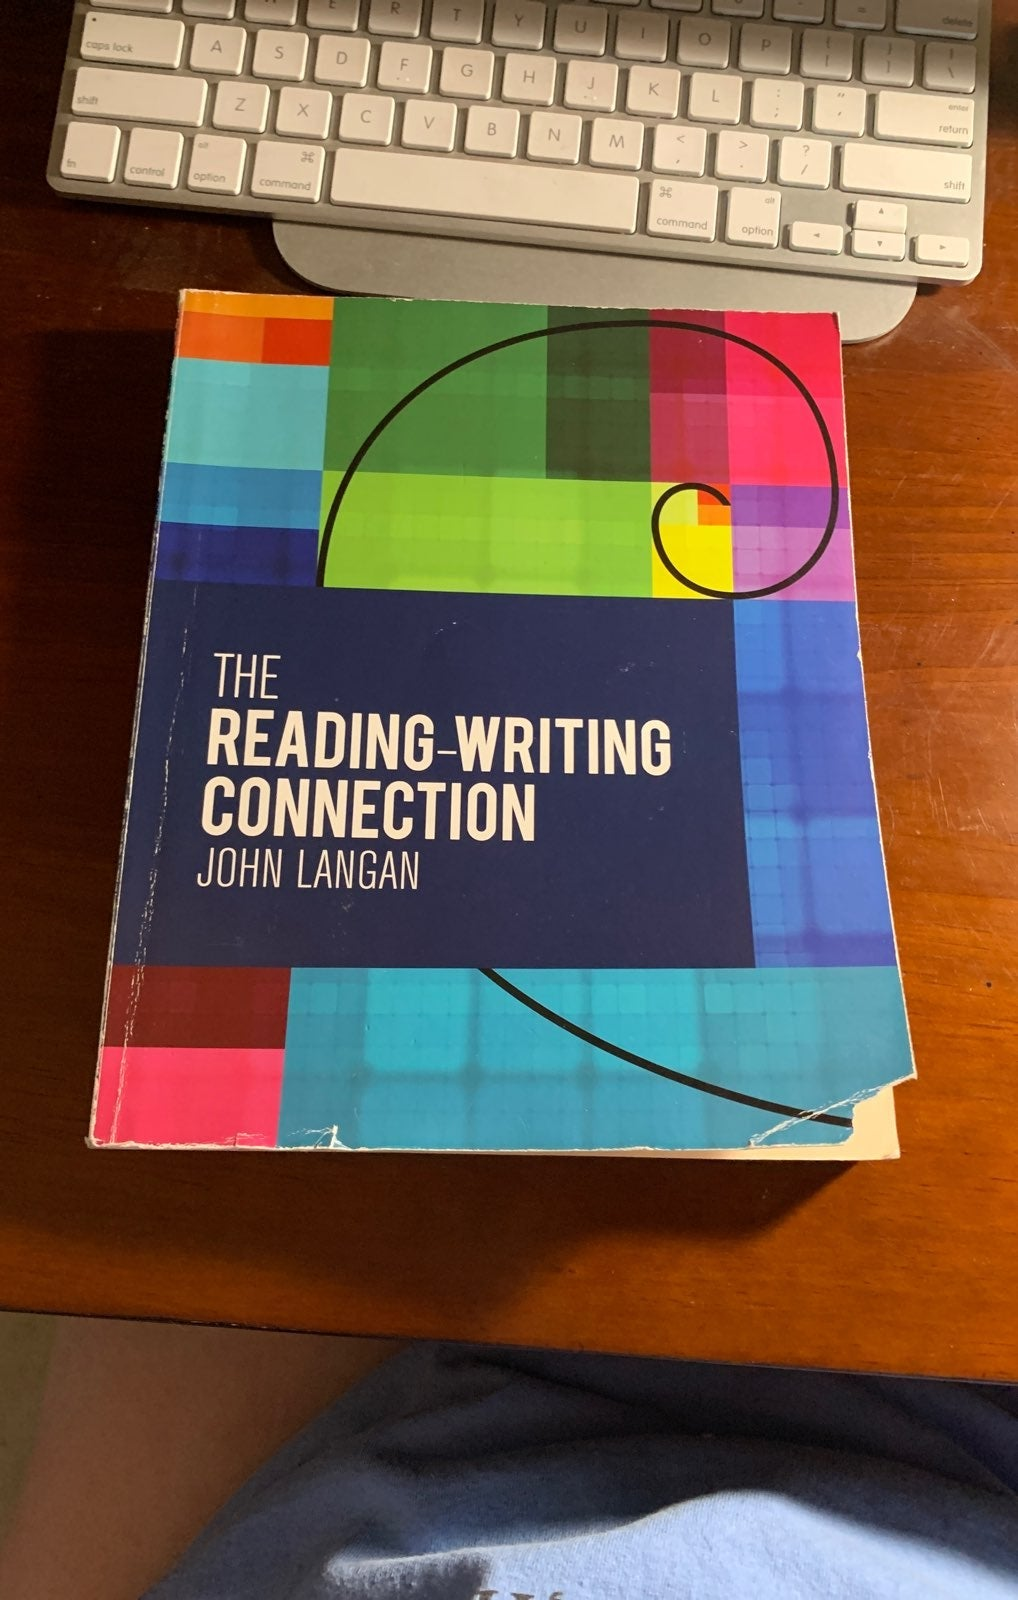 The Reading-Writing Connection